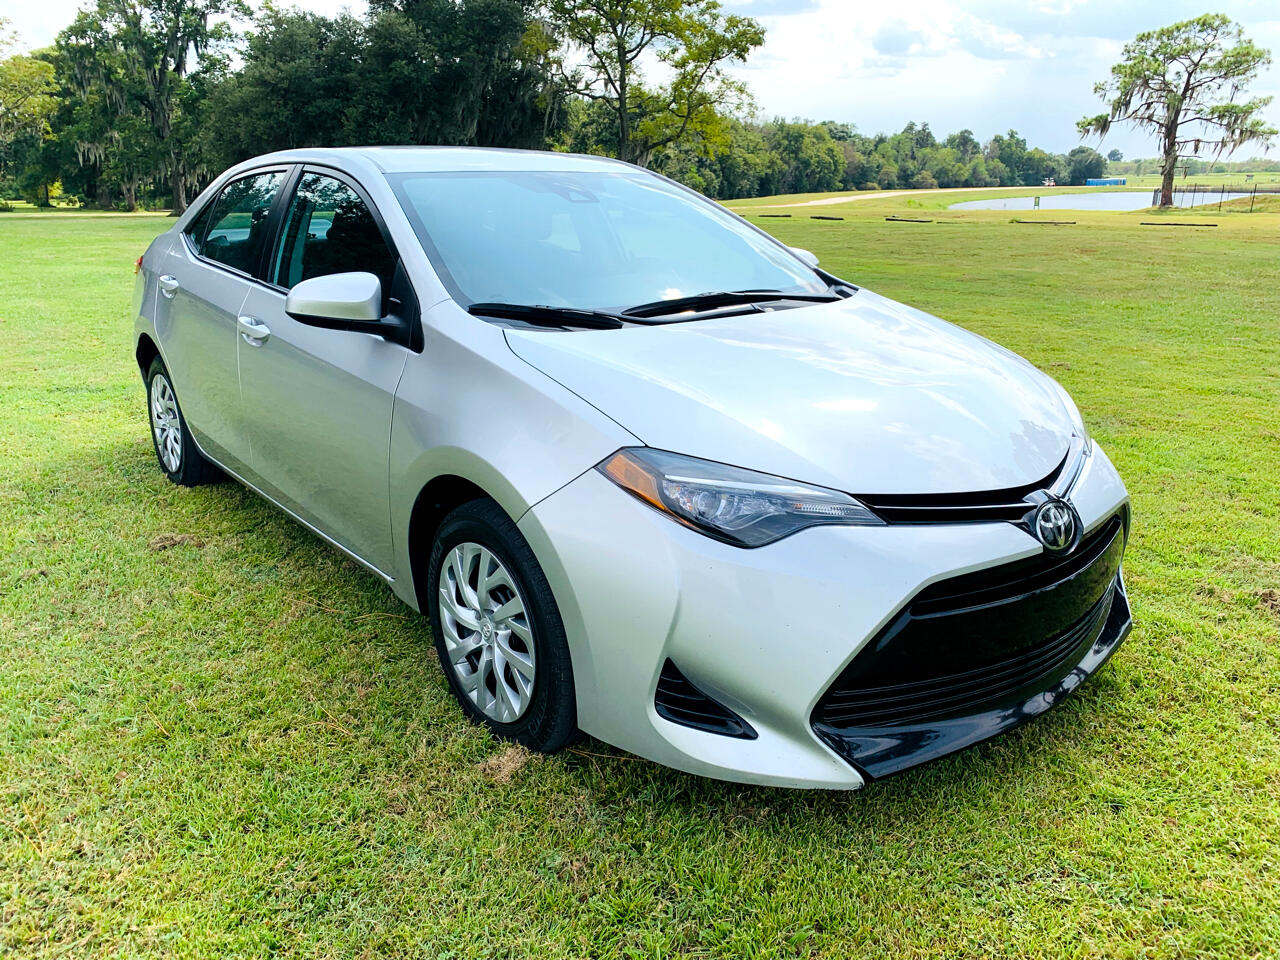 Toyota Corolla 2017 for Sale in Lakeland, FL